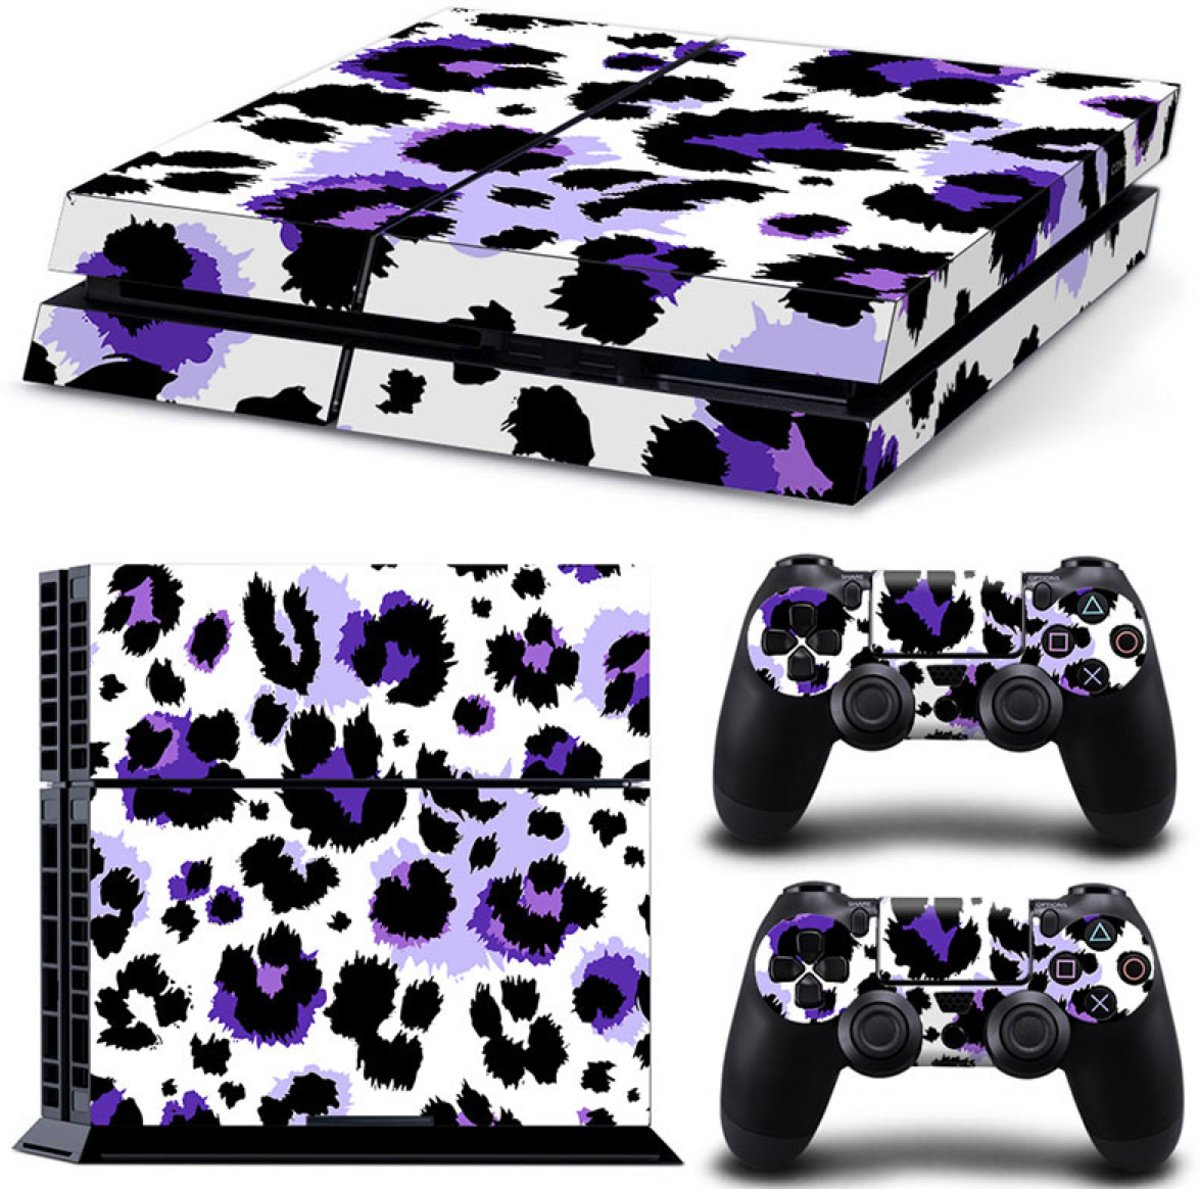 Luipaard Print Paars - PS4 Console Skins PlayStation Stickers